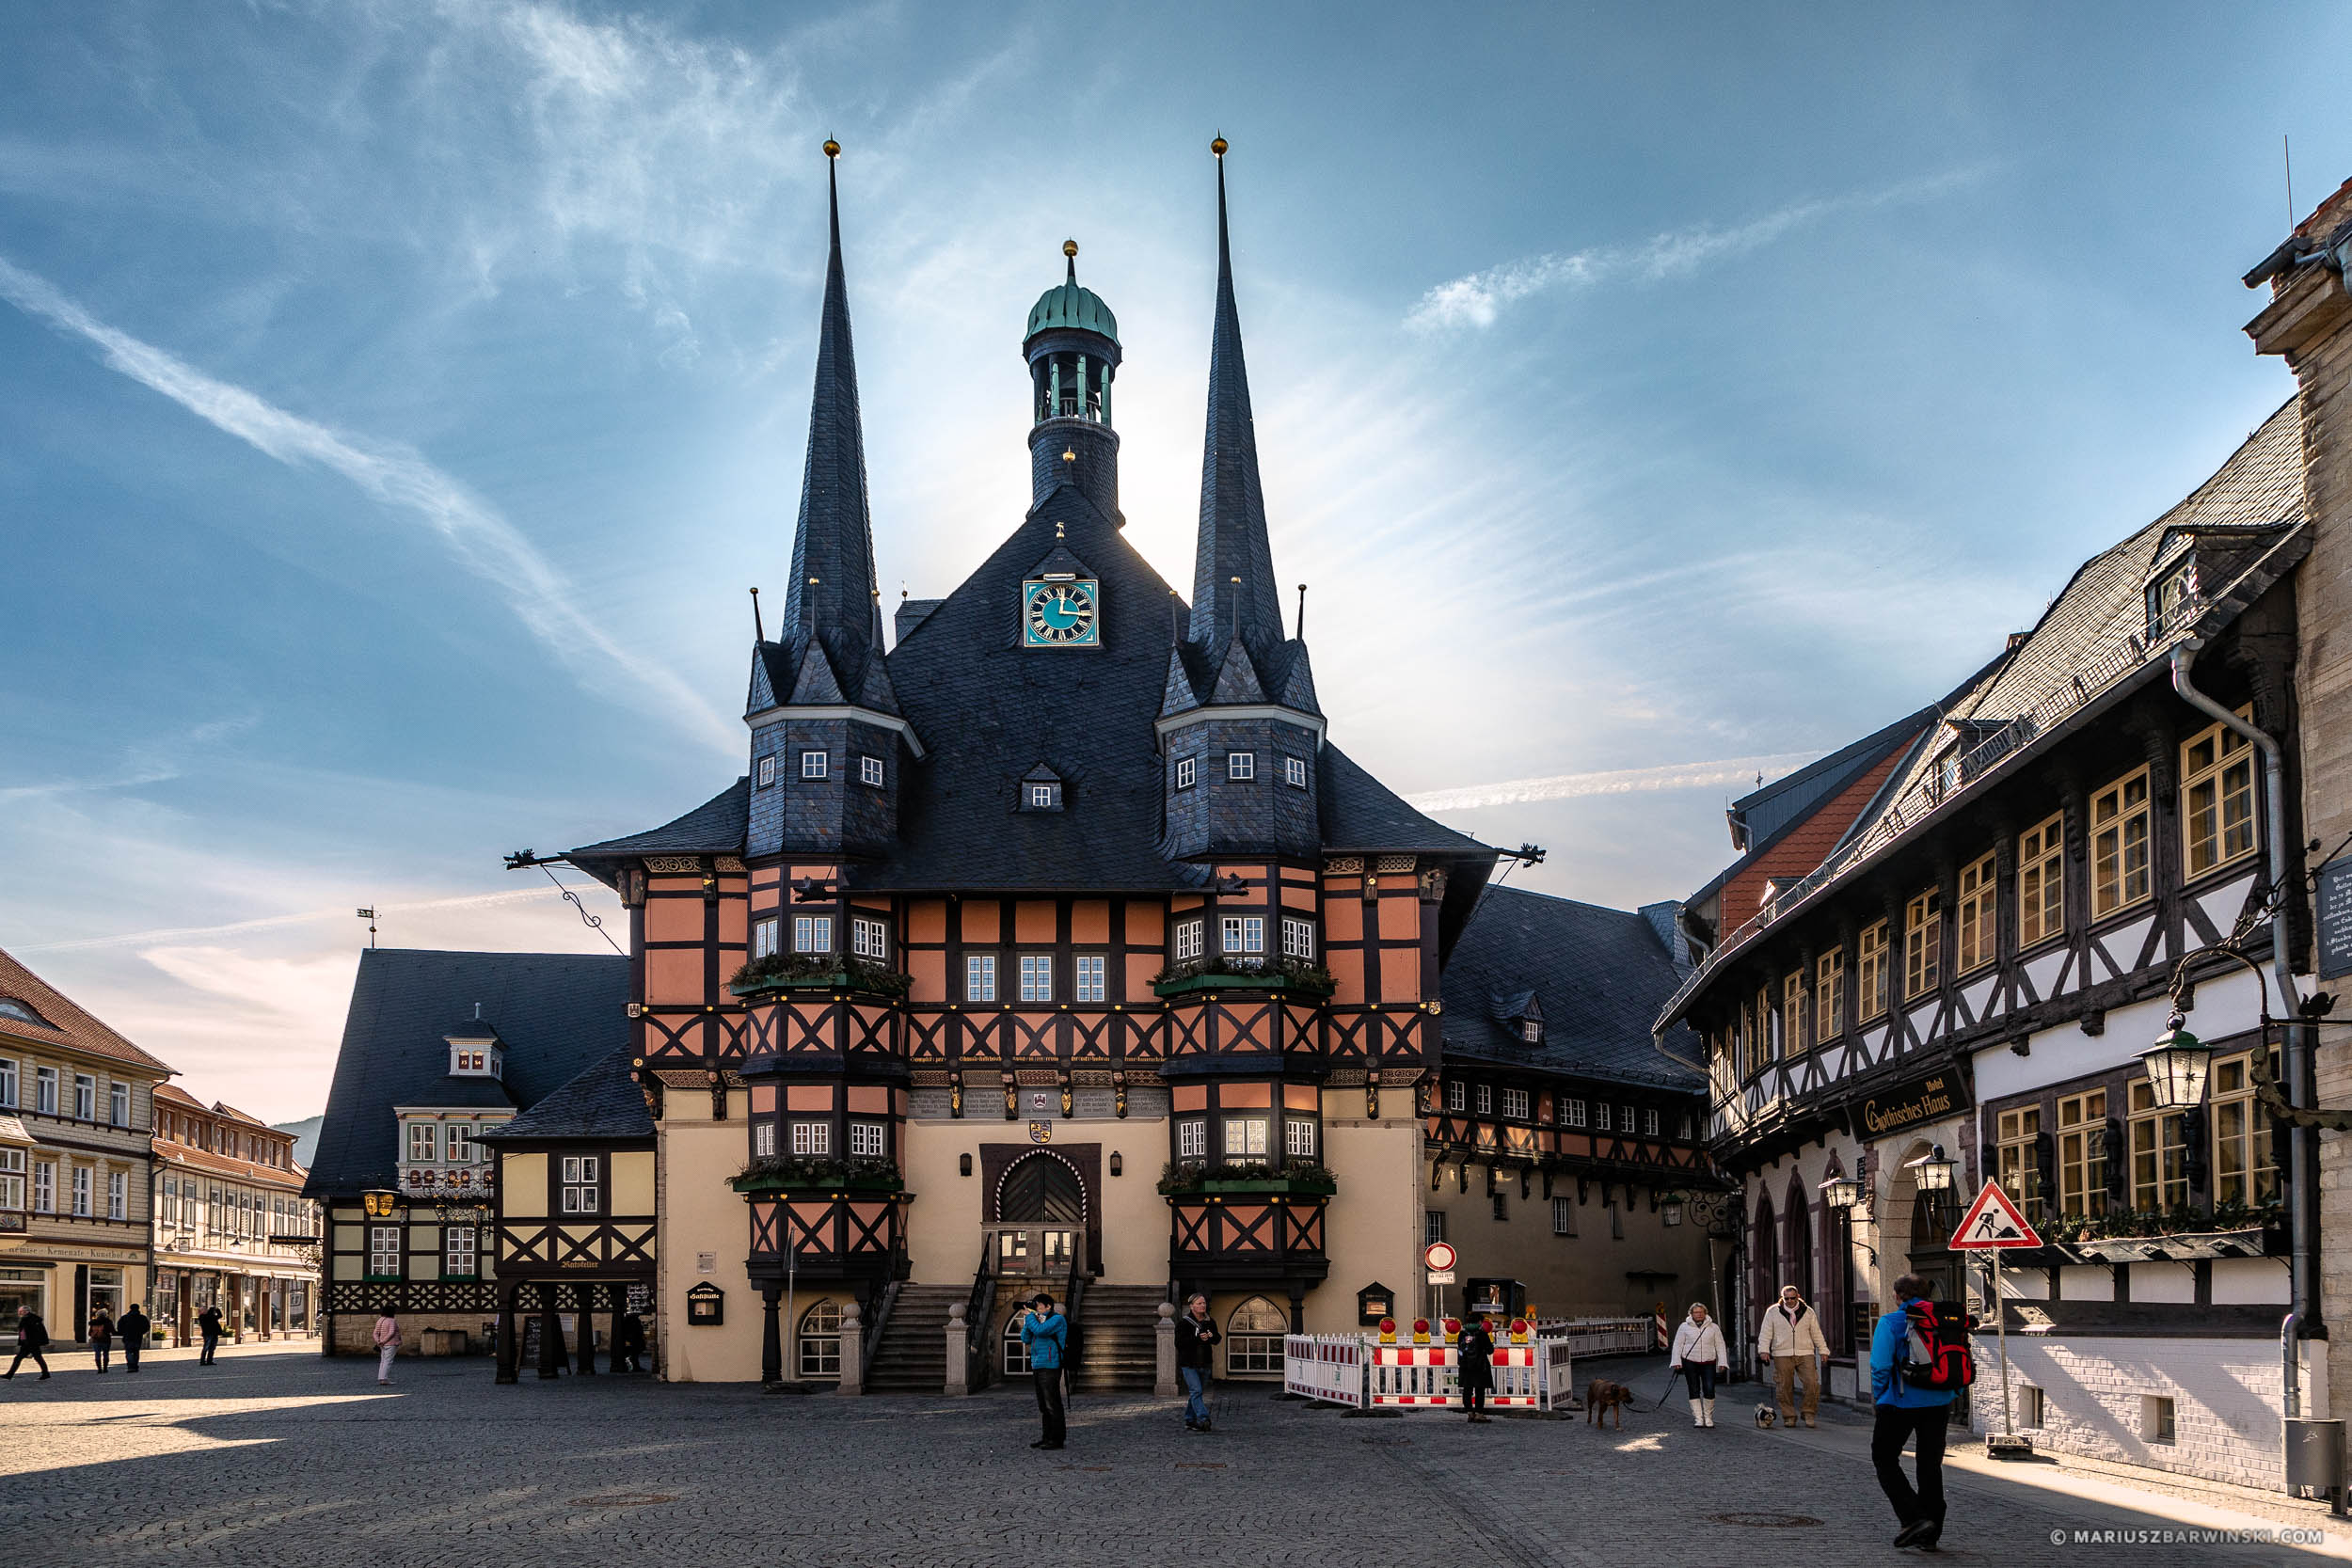 Town Hall in Wernigerode. Germany. Ratusz w Wernigerode.